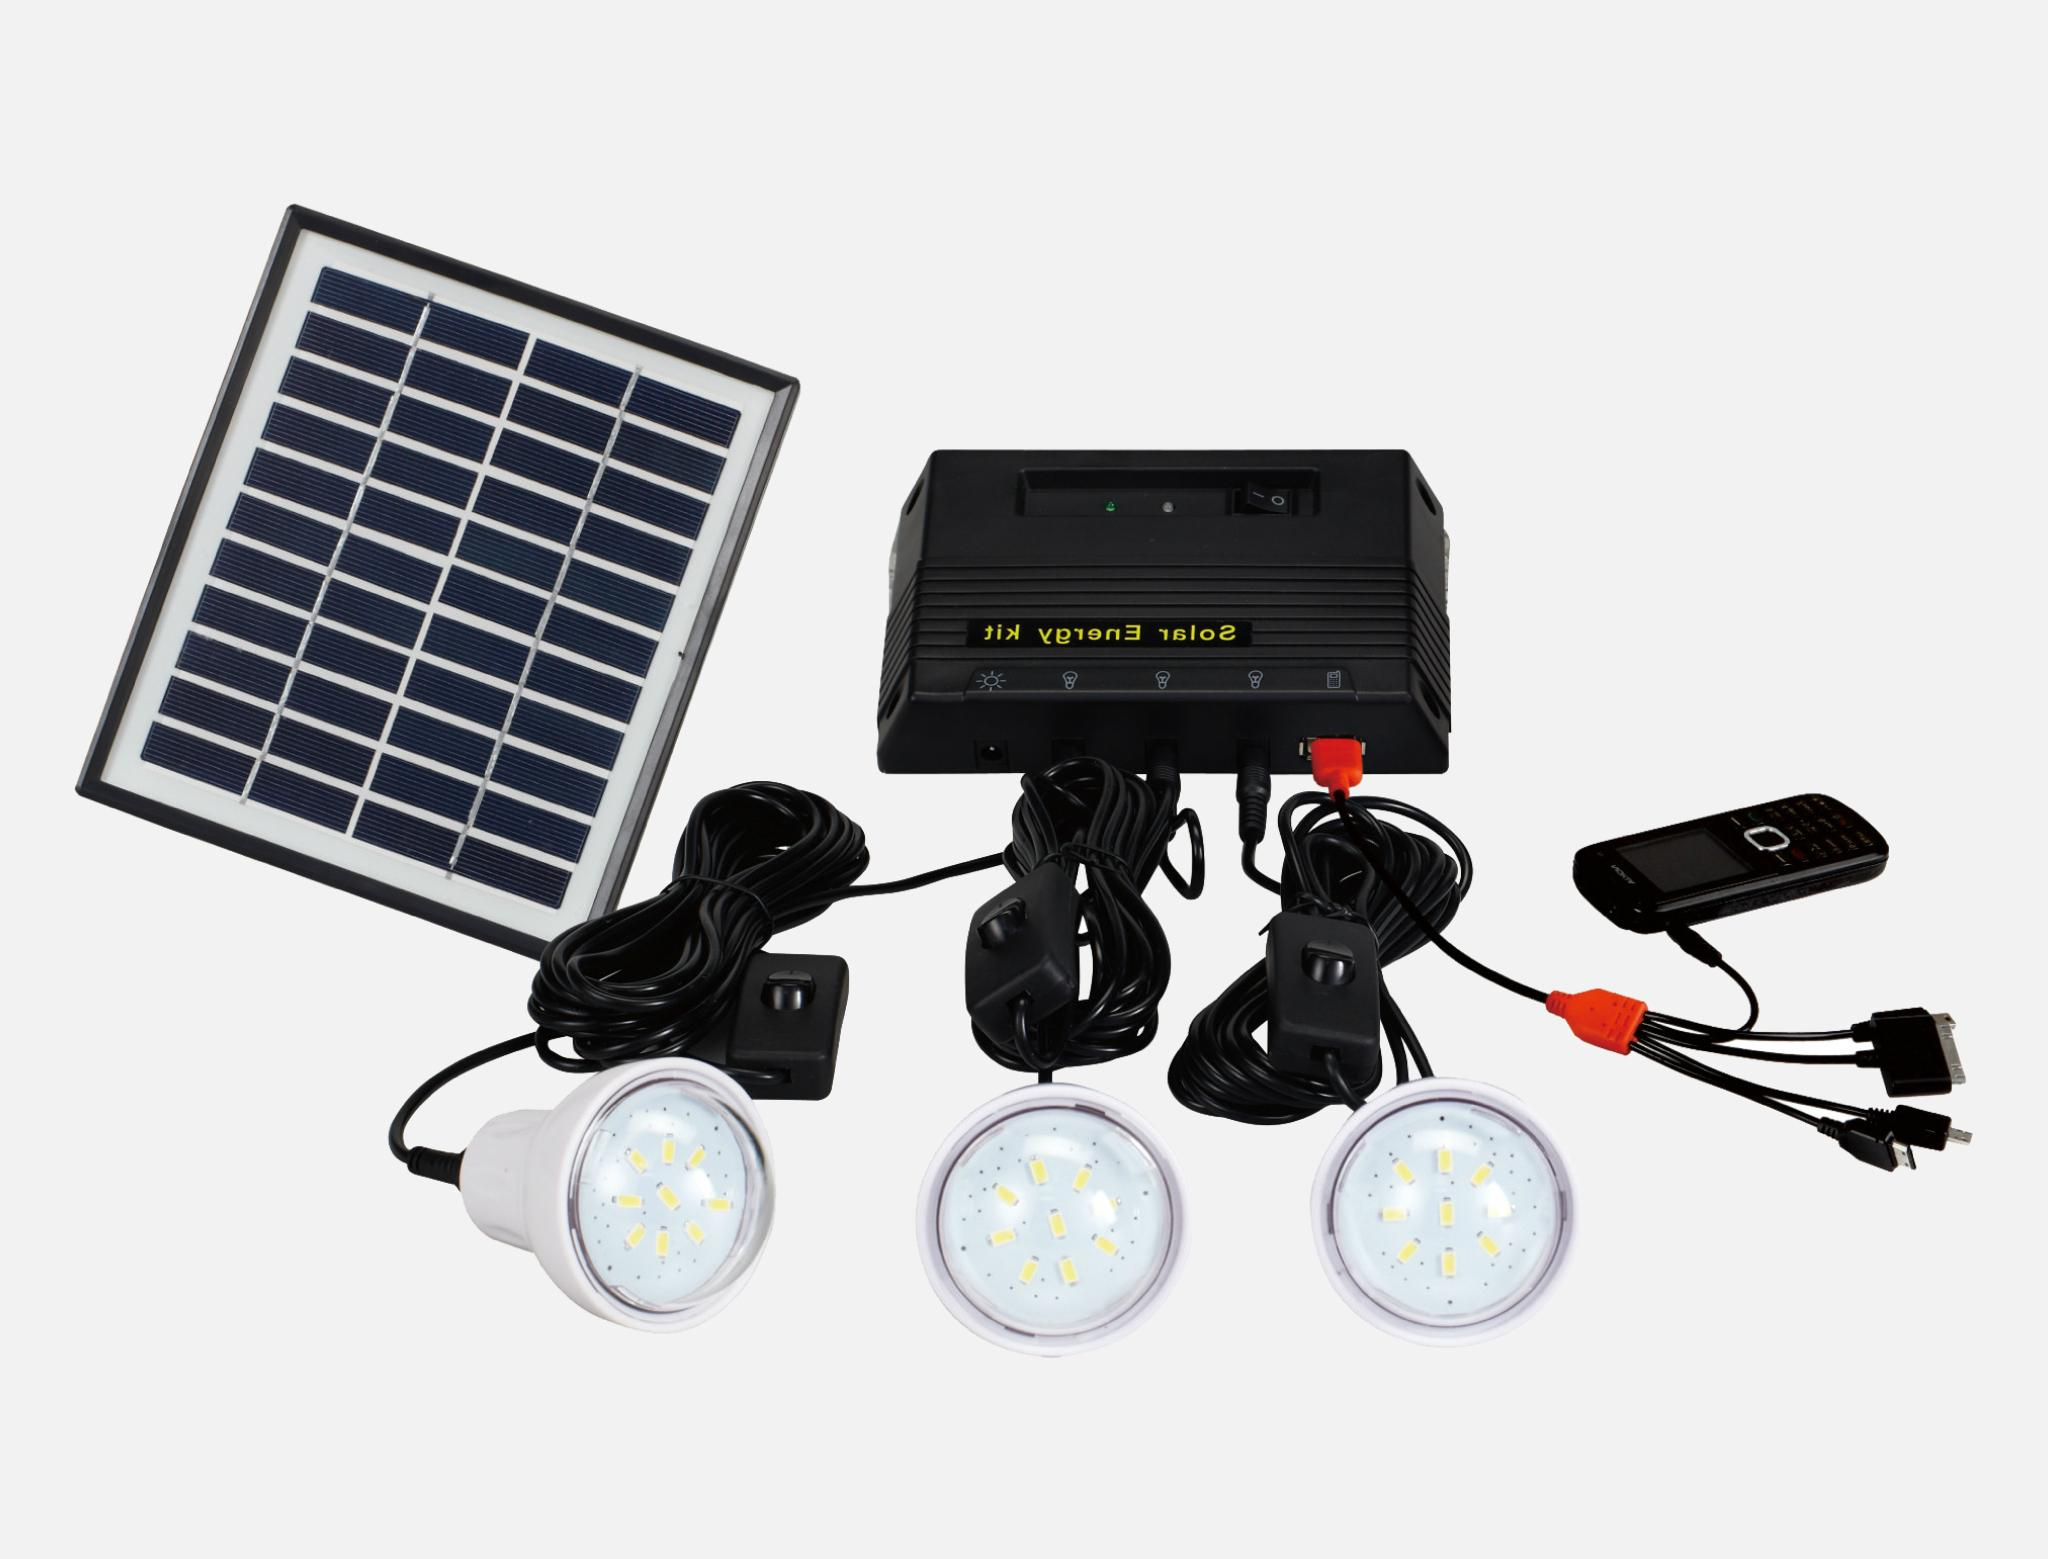 4W Solar Home Lighting Kit - 3 bulbs 1